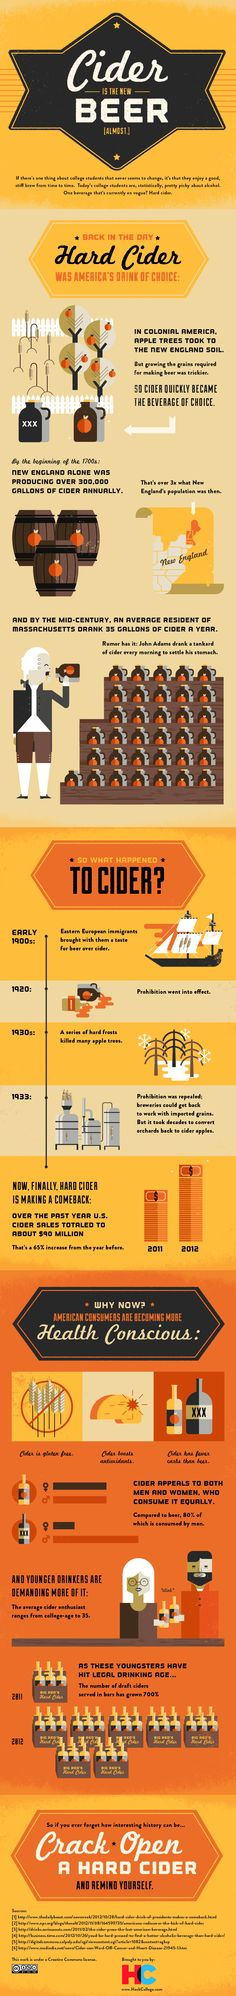 Cider Is The New Beer [infographic]